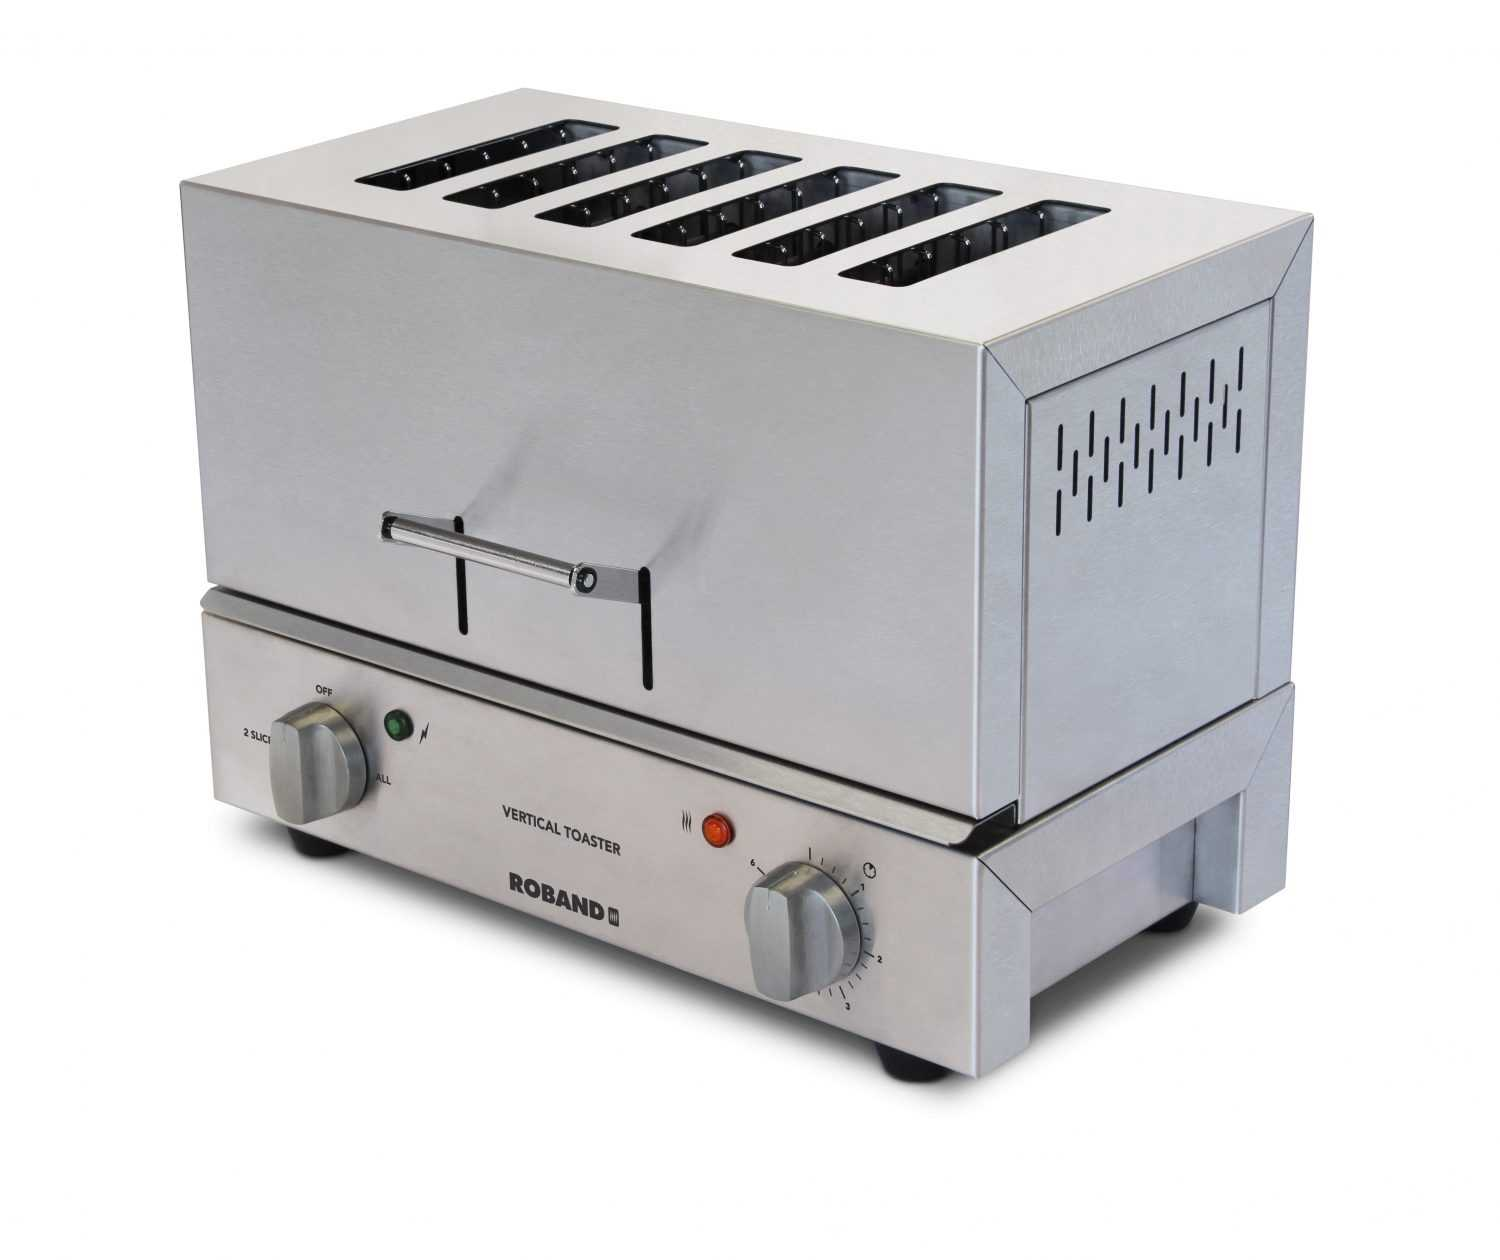 Roband TC66 Vertical Toaster, 6 slice